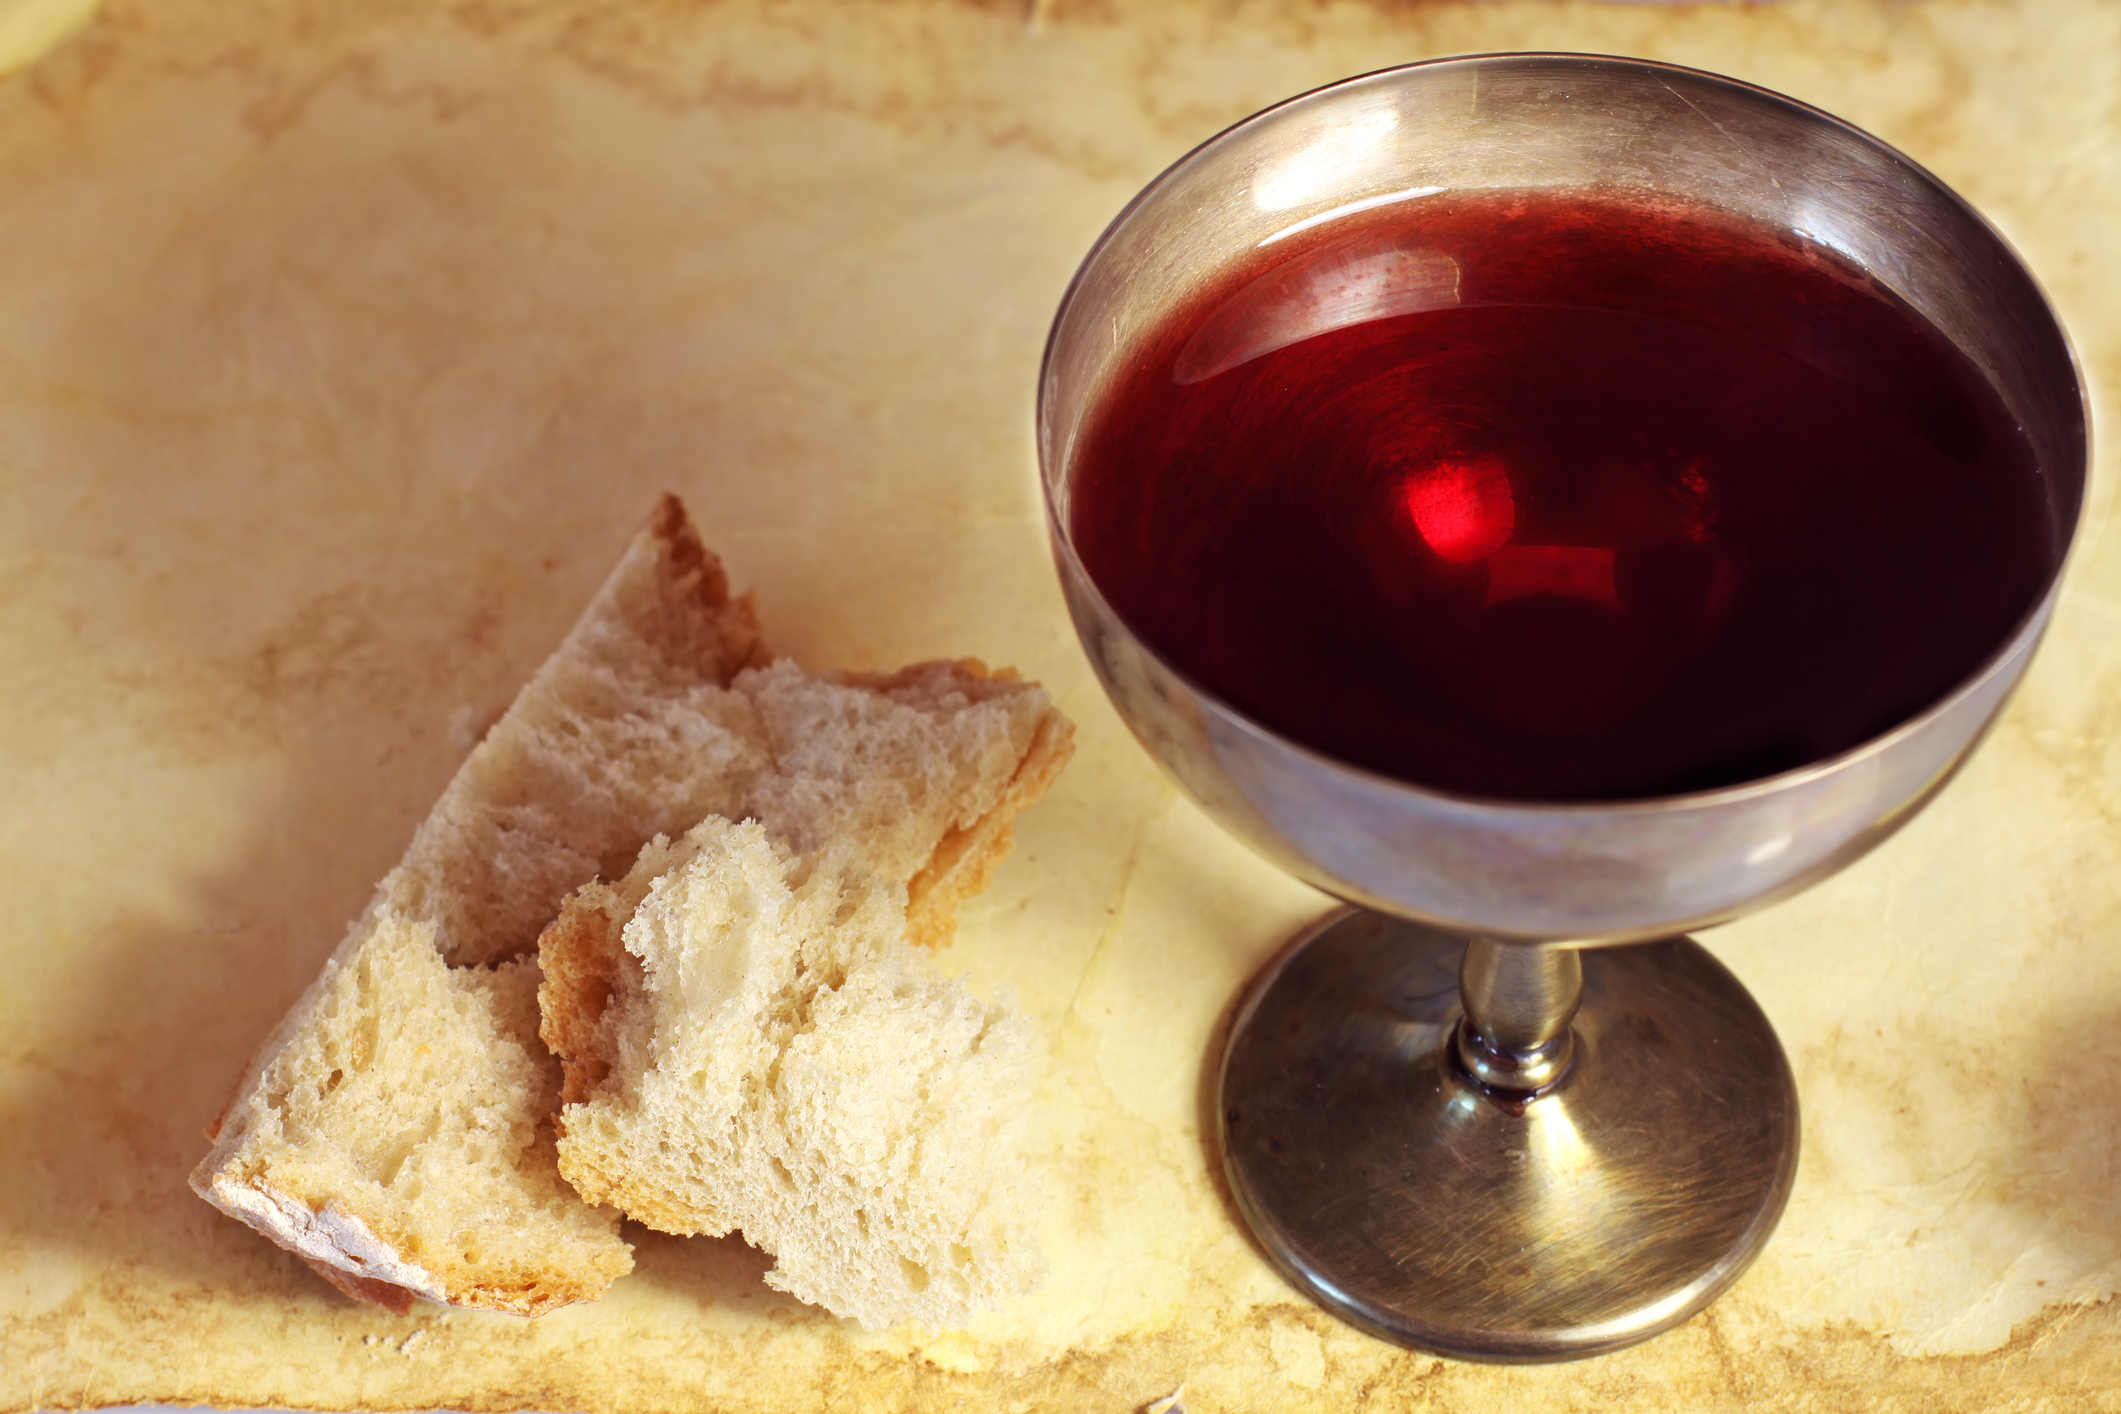 Maundy Thursday 2018 quotes, poems, wishes, images and prayers to help you celebrate